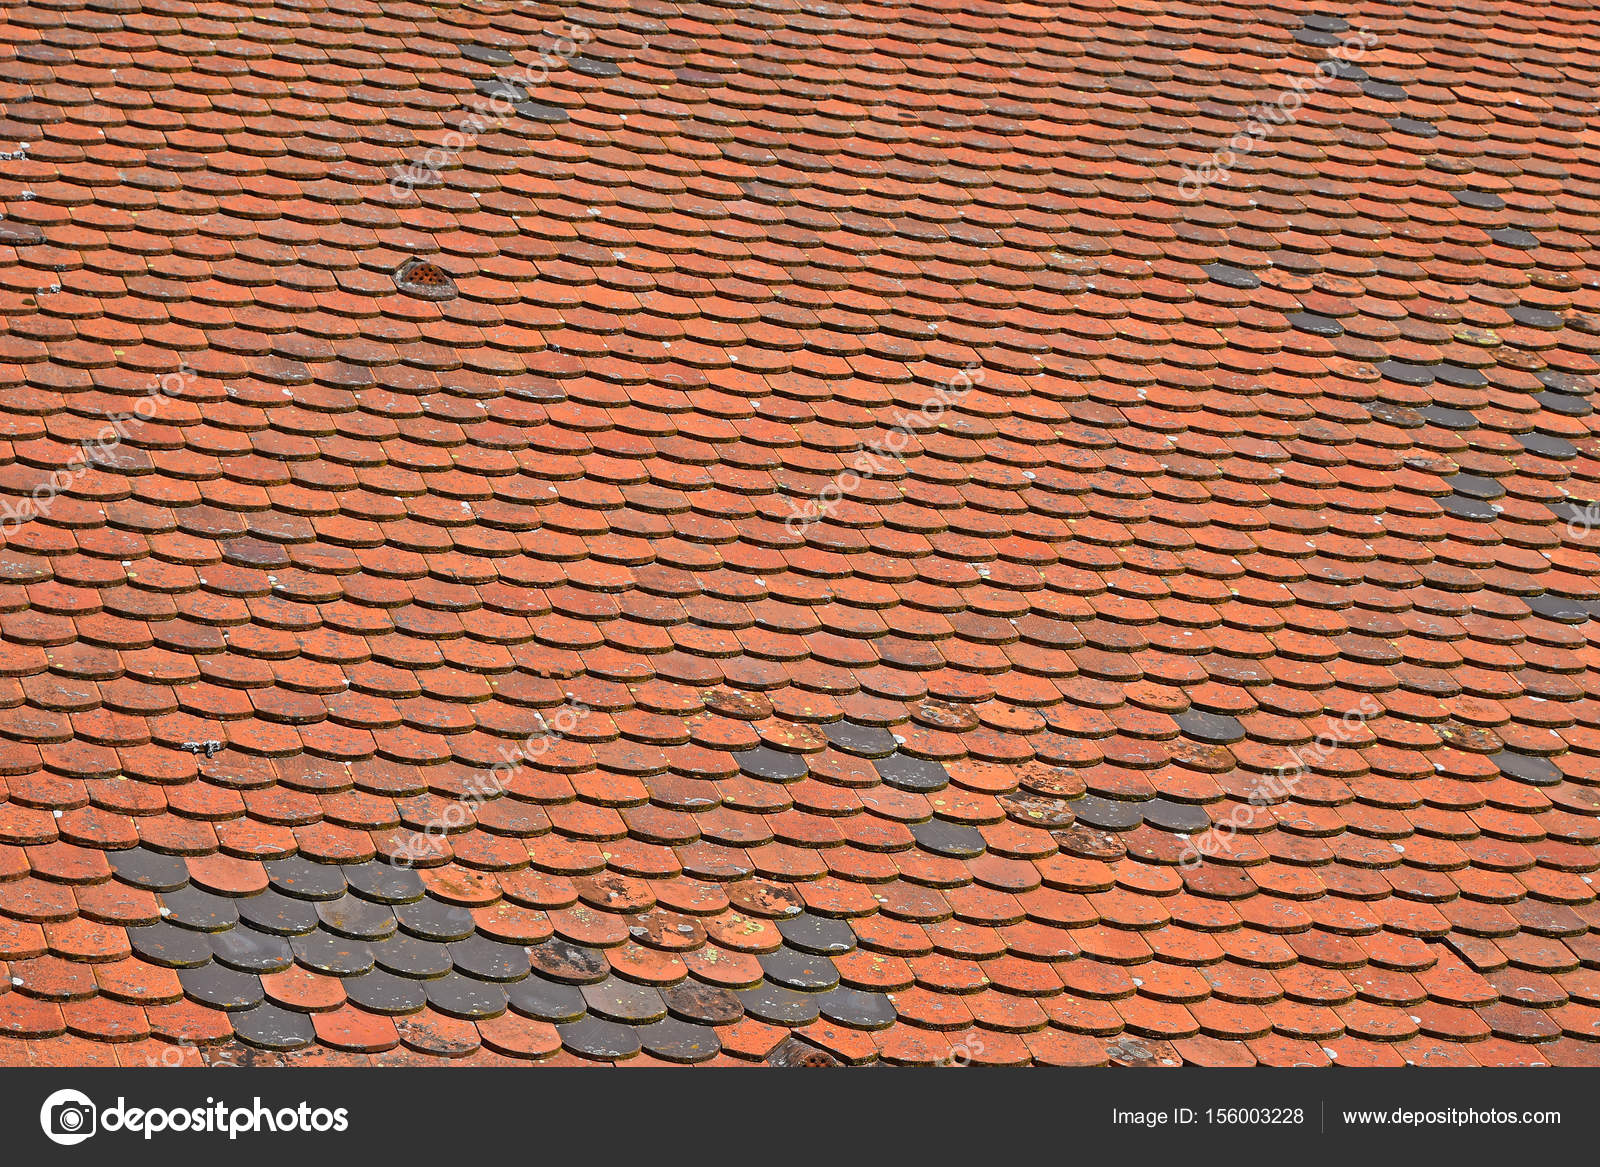 Old weathered red brown ceramic roof tiles stock photo old weathered red brown ceramic roof tiles stock photo dailygadgetfo Image collections